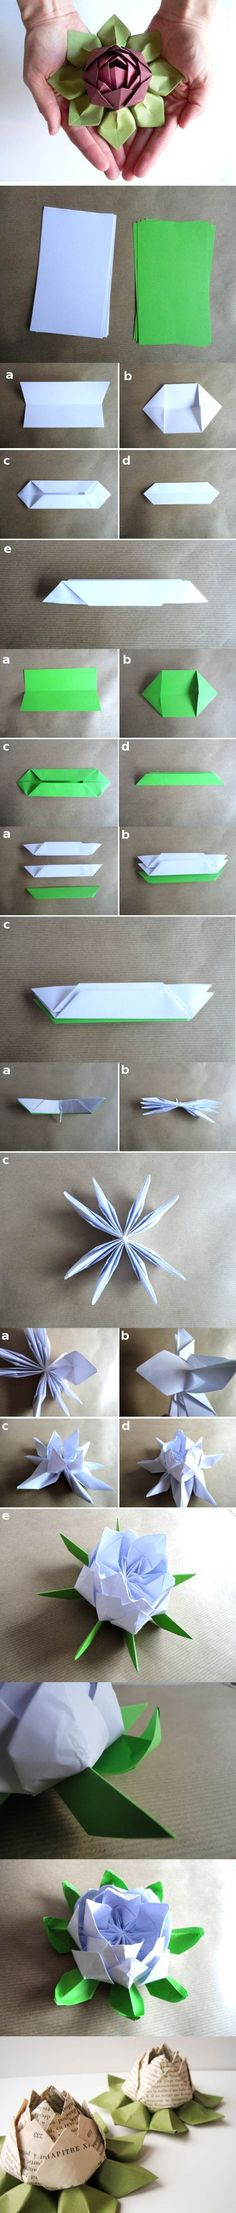 DIY Origami Lotus Flower | iCreativeIdeas.com Follow Us on Facebook --> https://www.facebook.com/icreativeideas